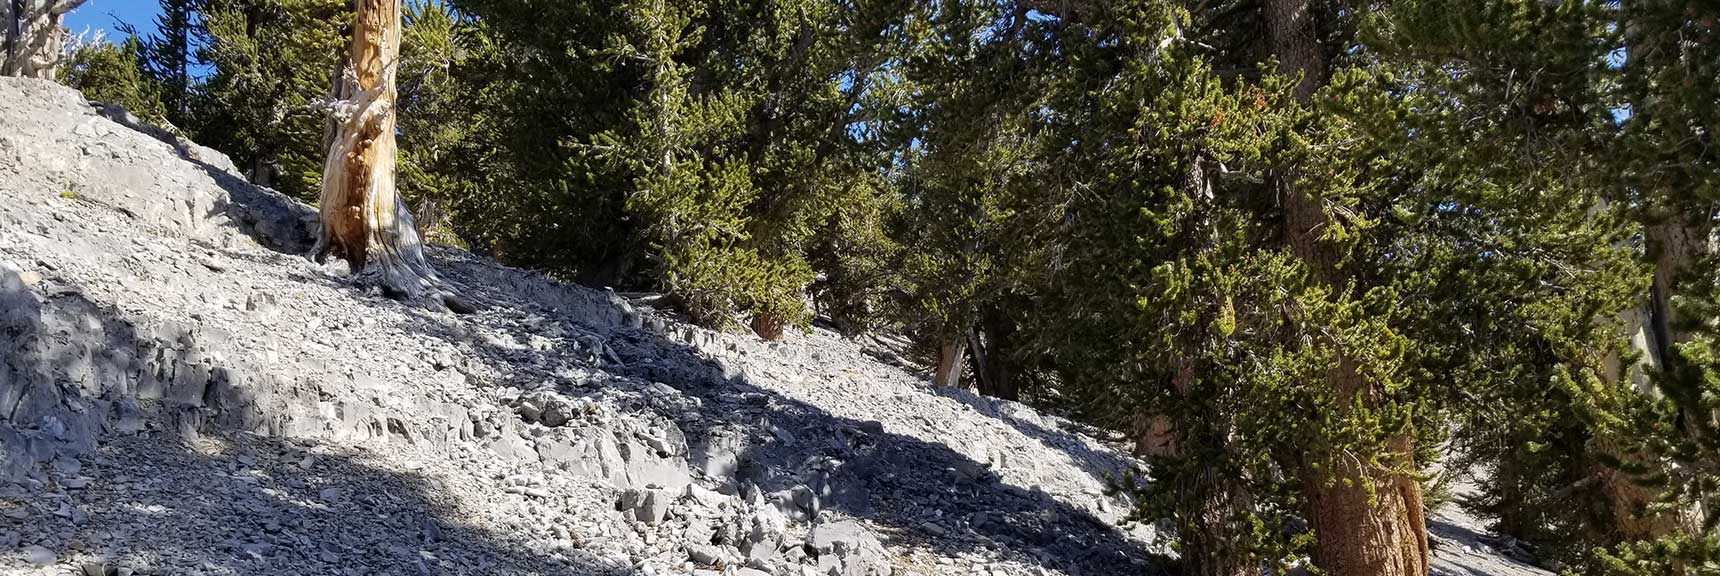 Ascending the Upper Approach Route to Lee Peak in Kyle Canyon, Spring Mountains, Nevada Slide 001